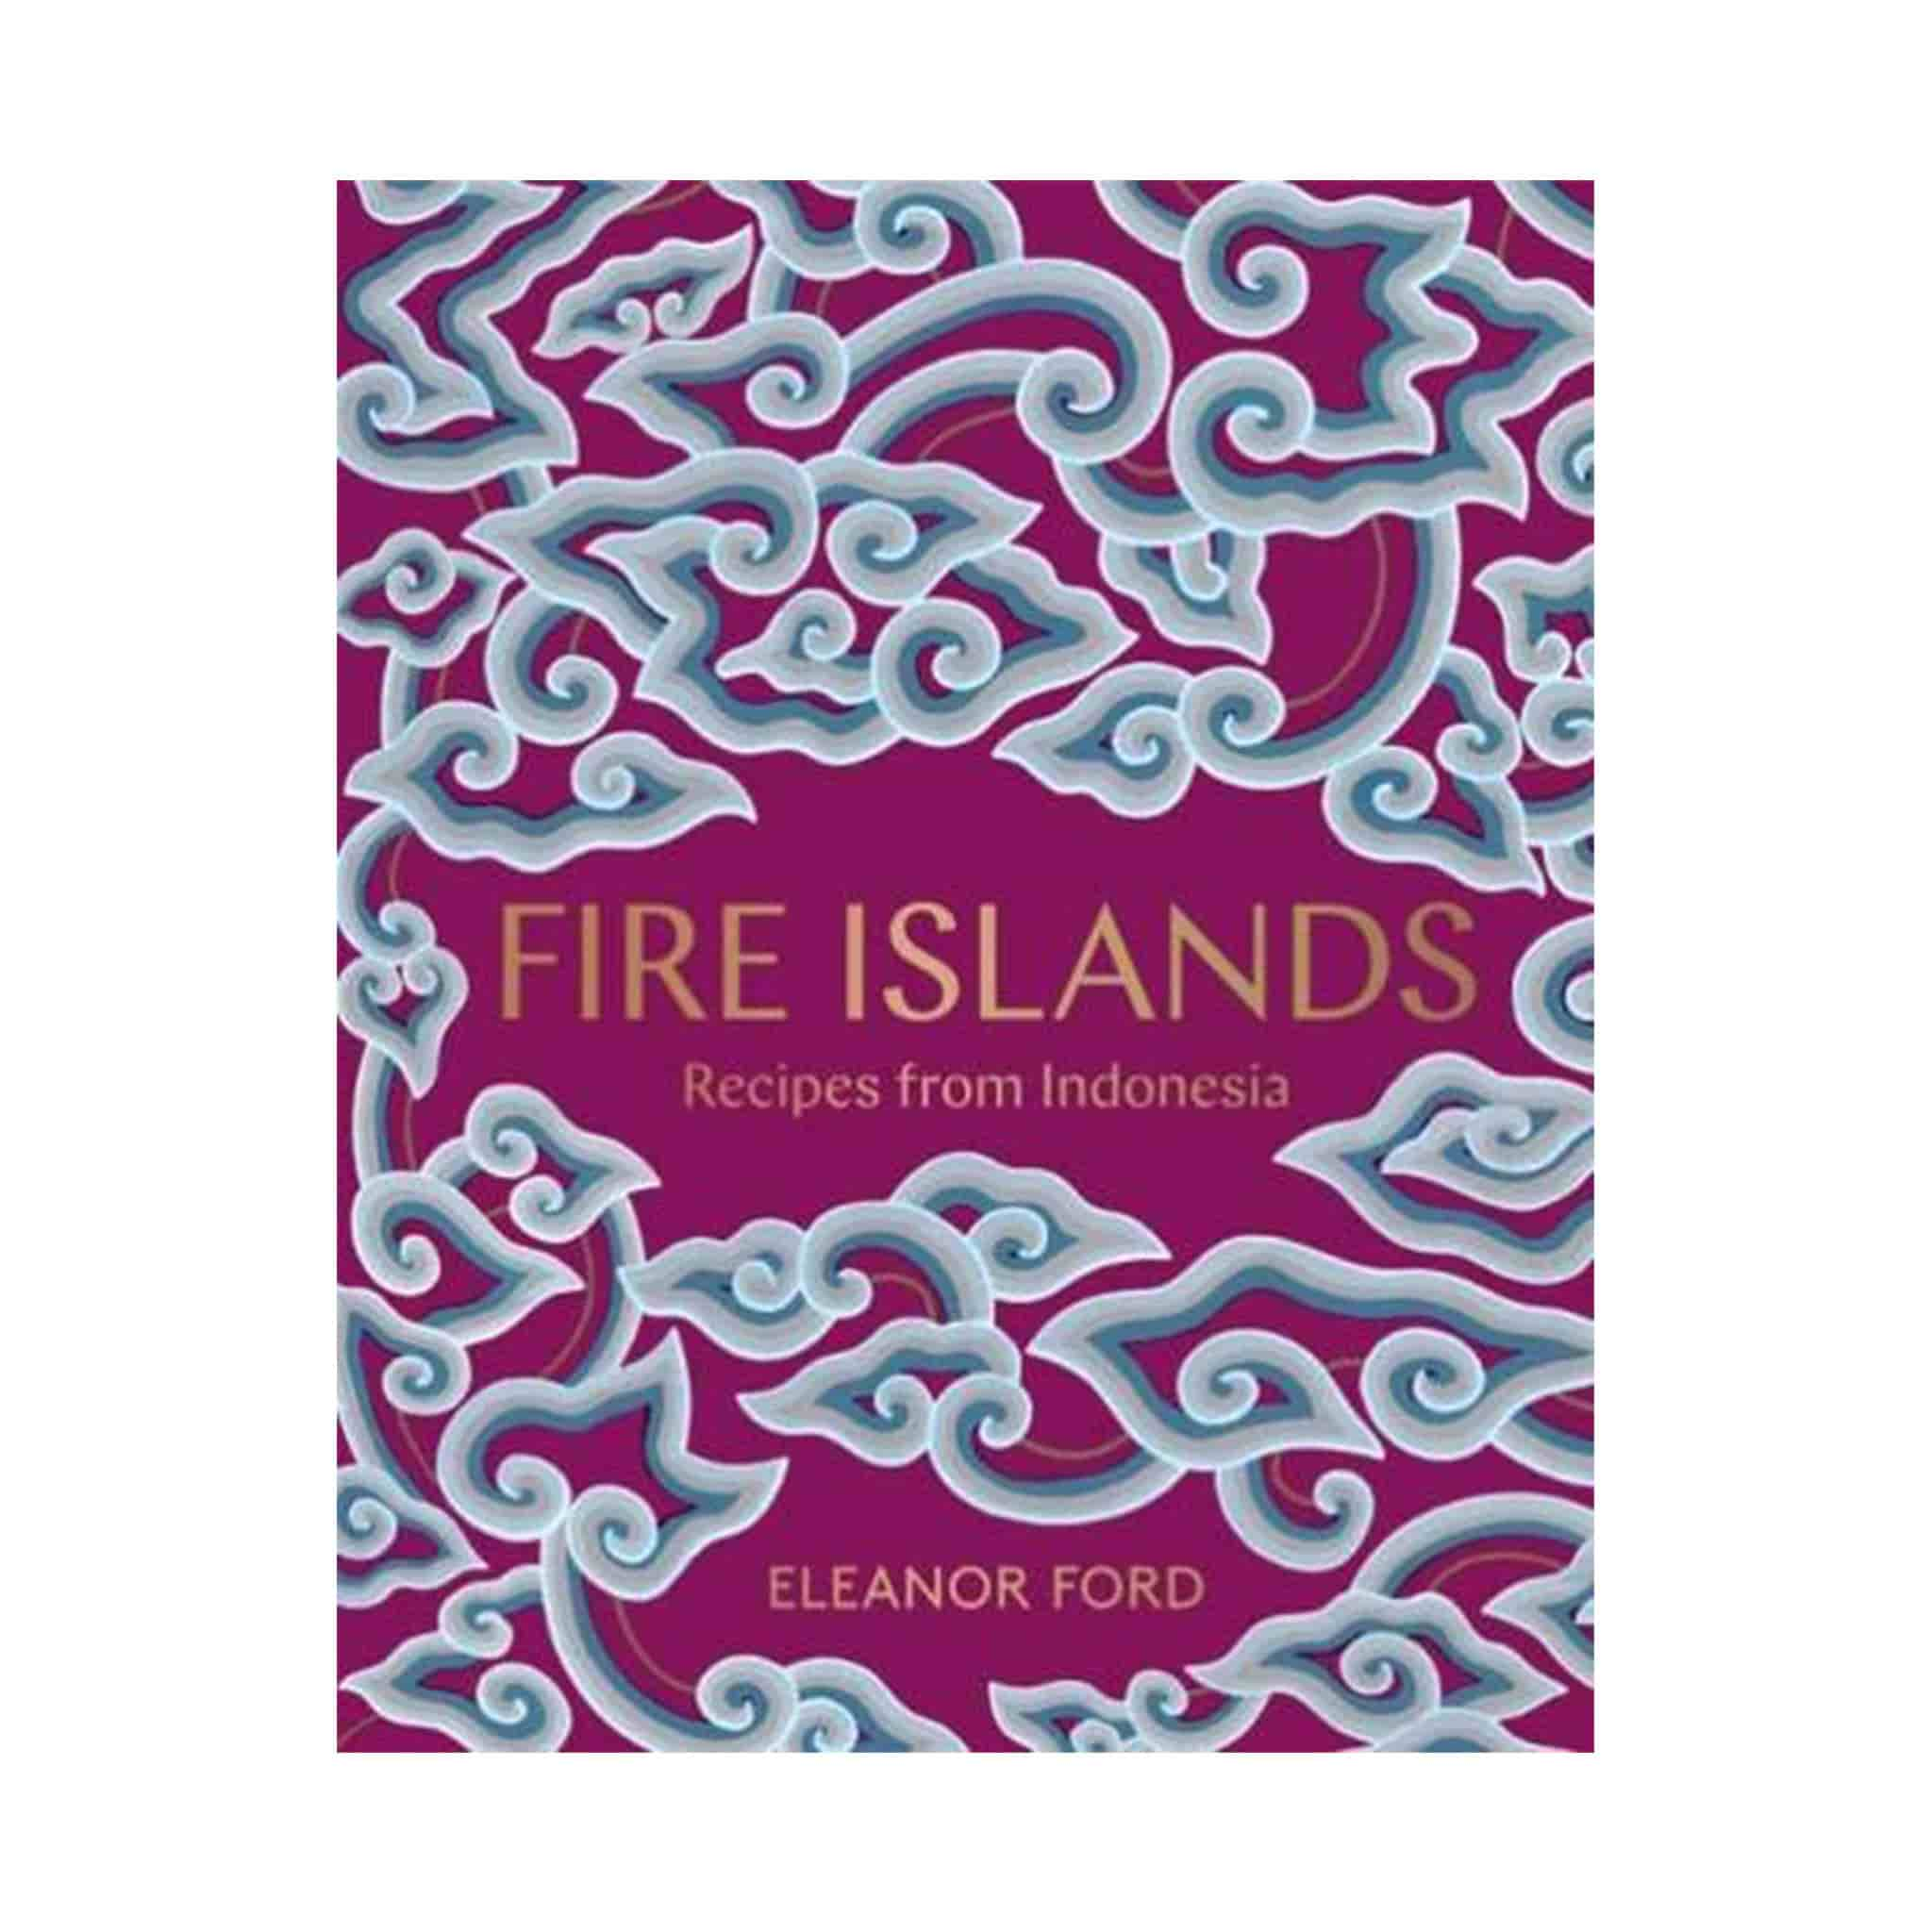 Fire Islands: Recipes from Indonesia by Eleanor Ford